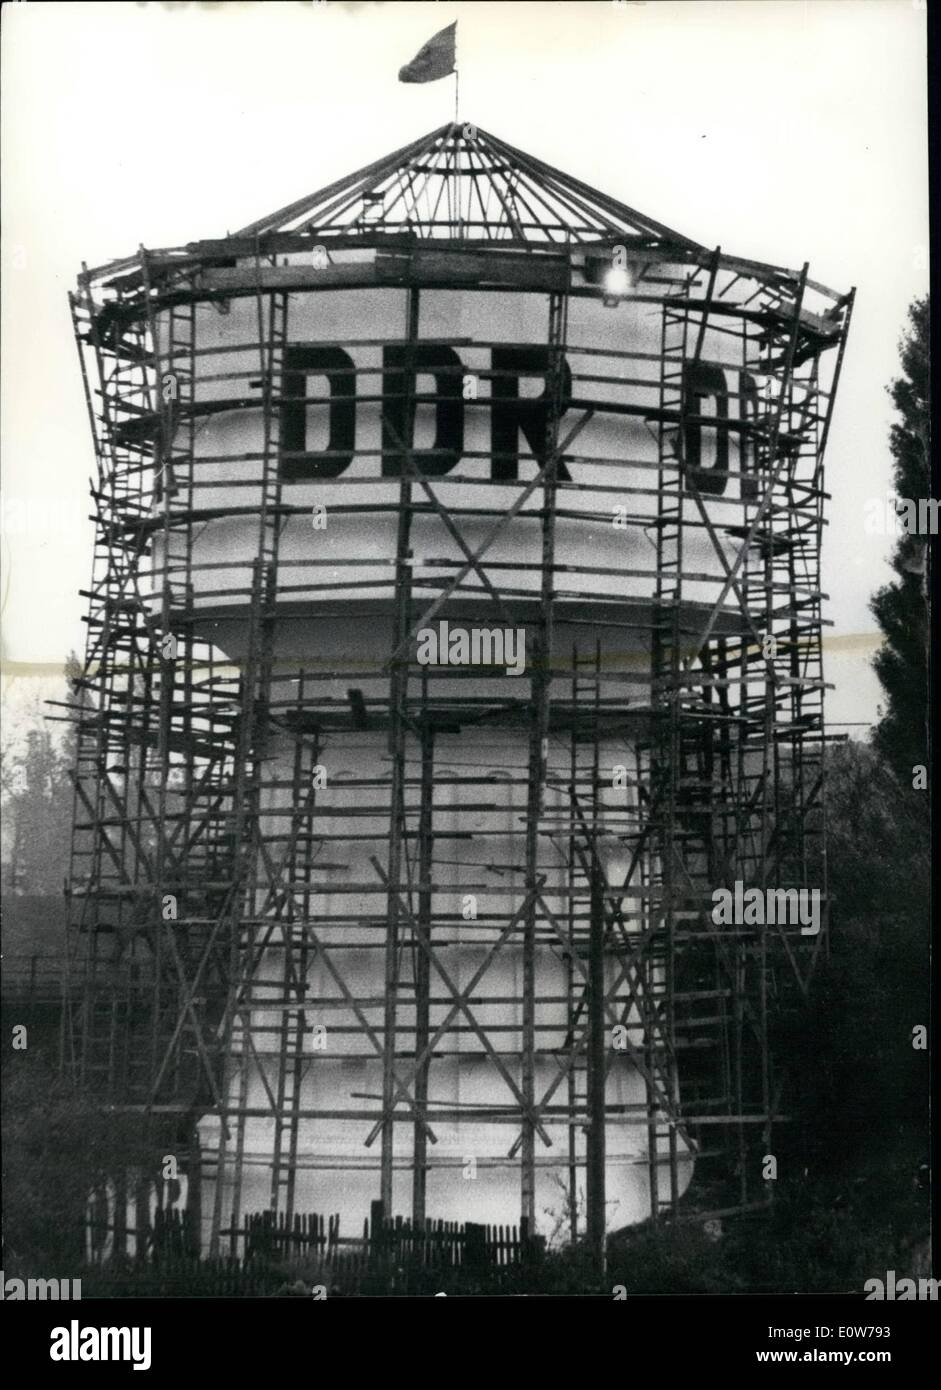 Oct. 10, 1961 - A big anger for the West - Berliners: Is the water - tower of the Soviet zone Reinchsbahn. The communists authorities has put on the letters ''DDR' and has accupated it by ''Transport - Polizisten'' with machine - guns and small machine - guns at this water-tower is effectively more than 180 yards in West Berlin territory and stands not in the Soviet Sector of Berlin. - Stock Image